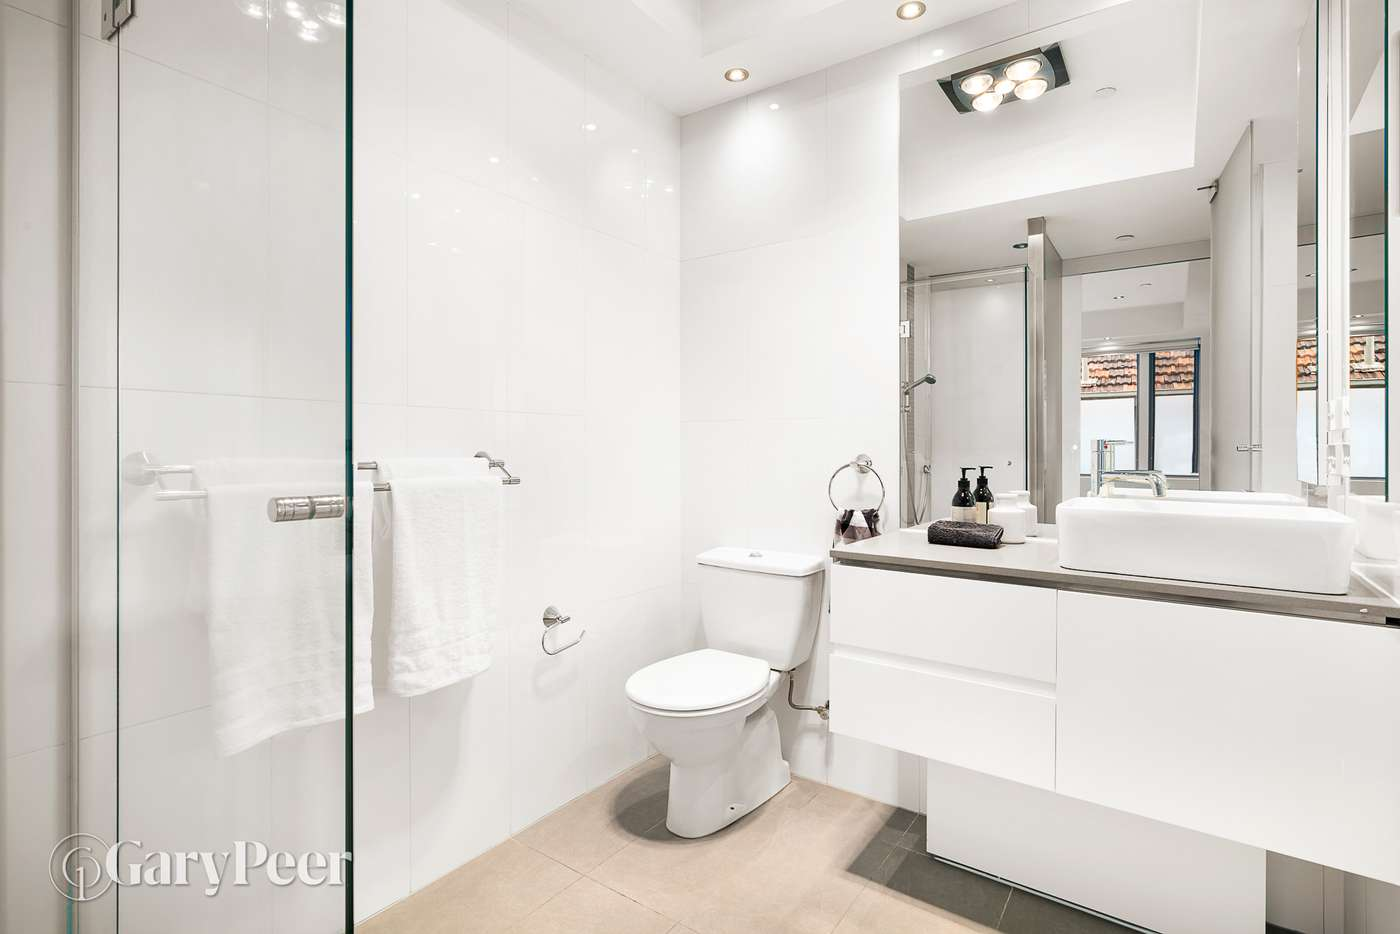 Fifth view of Homely apartment listing, 3/19 Gourlay Street, St Kilda East VIC 3183